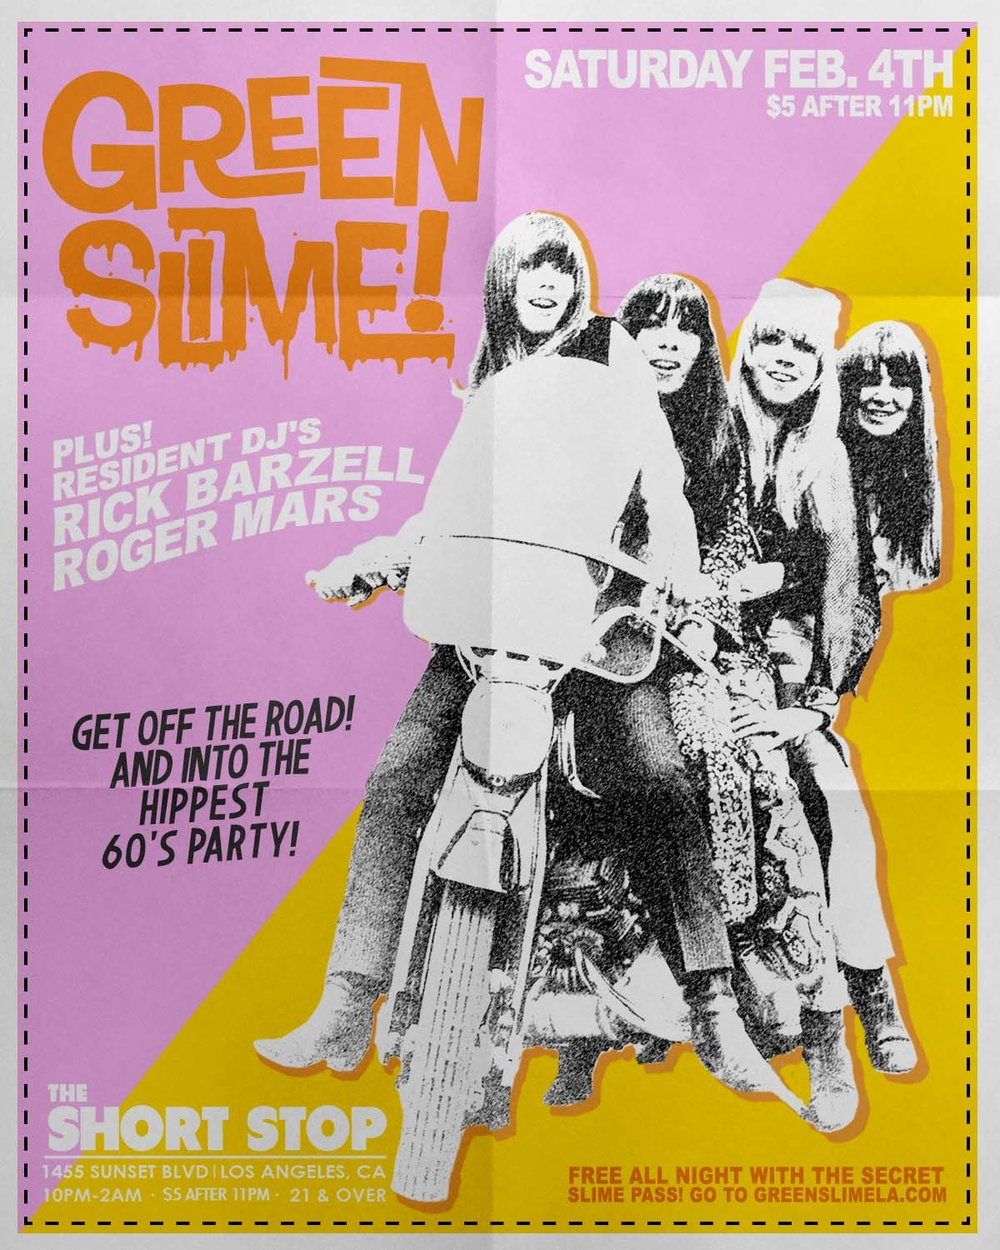 GREEN SLIME FEB FLYER.jpg